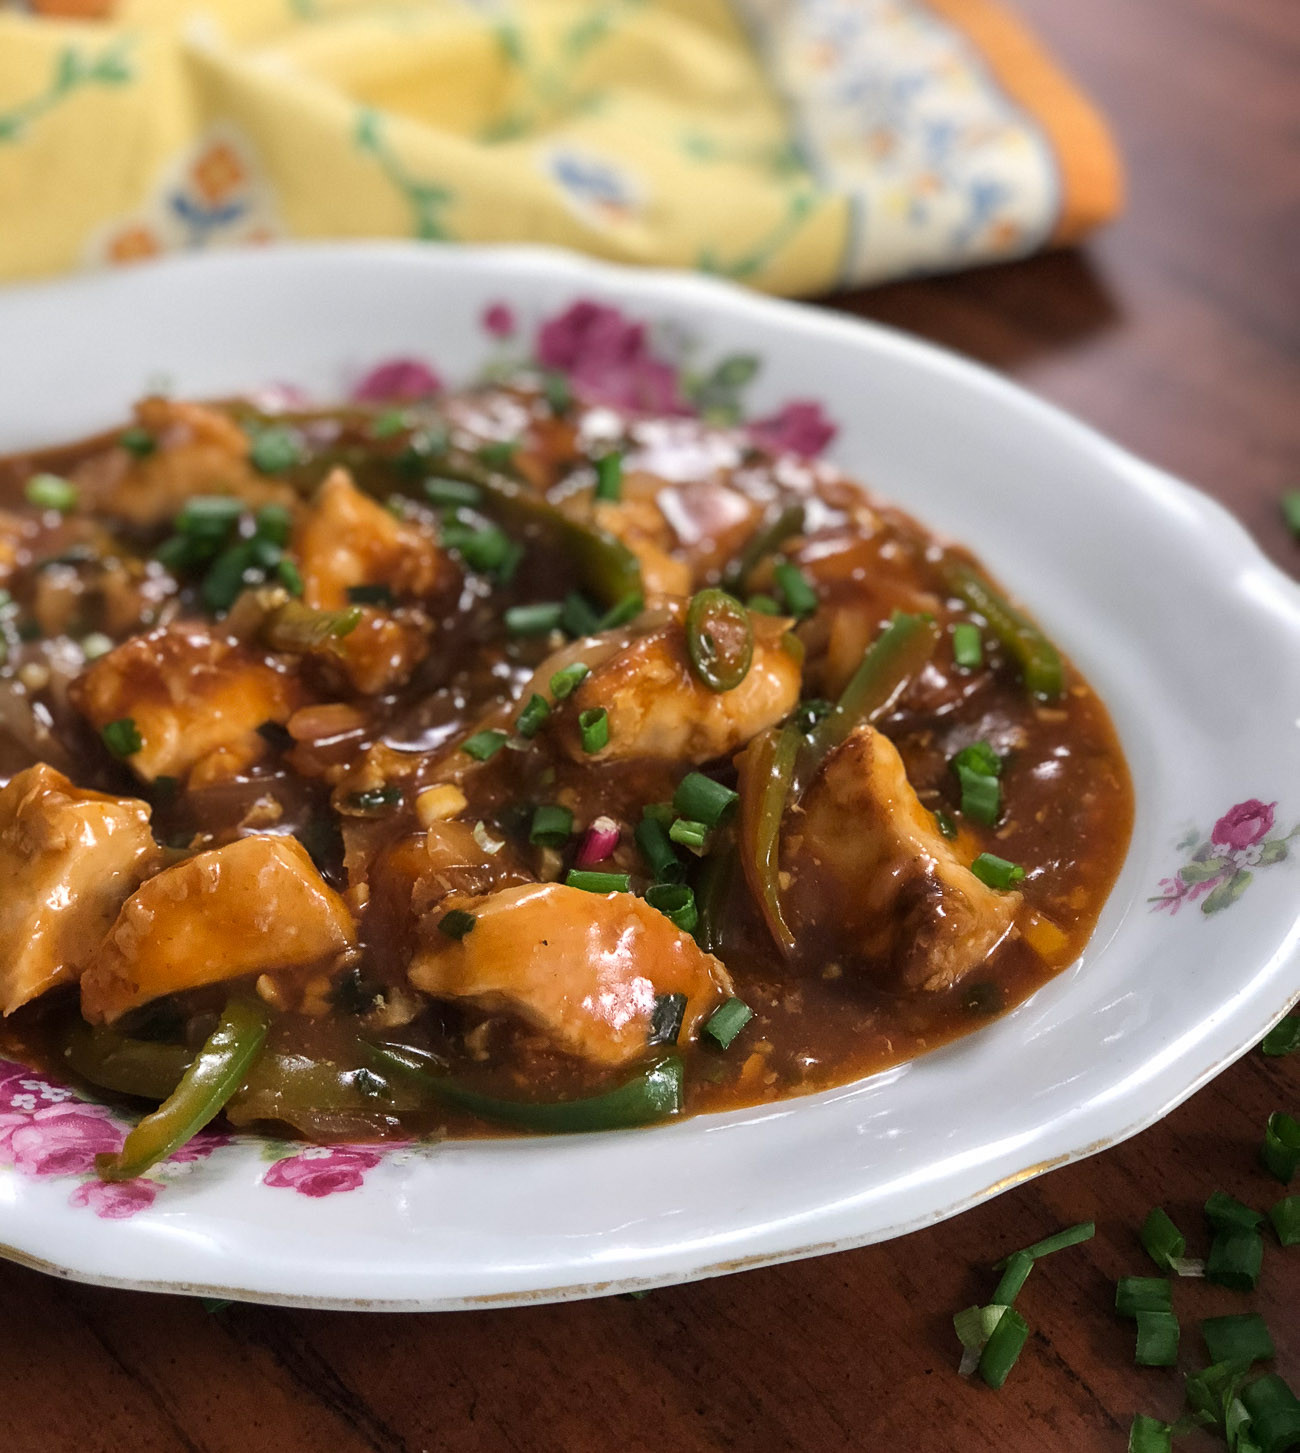 Chicken manchurian recipe gravy by archanas kitchen chicken manchurian recipe gravy forumfinder Image collections